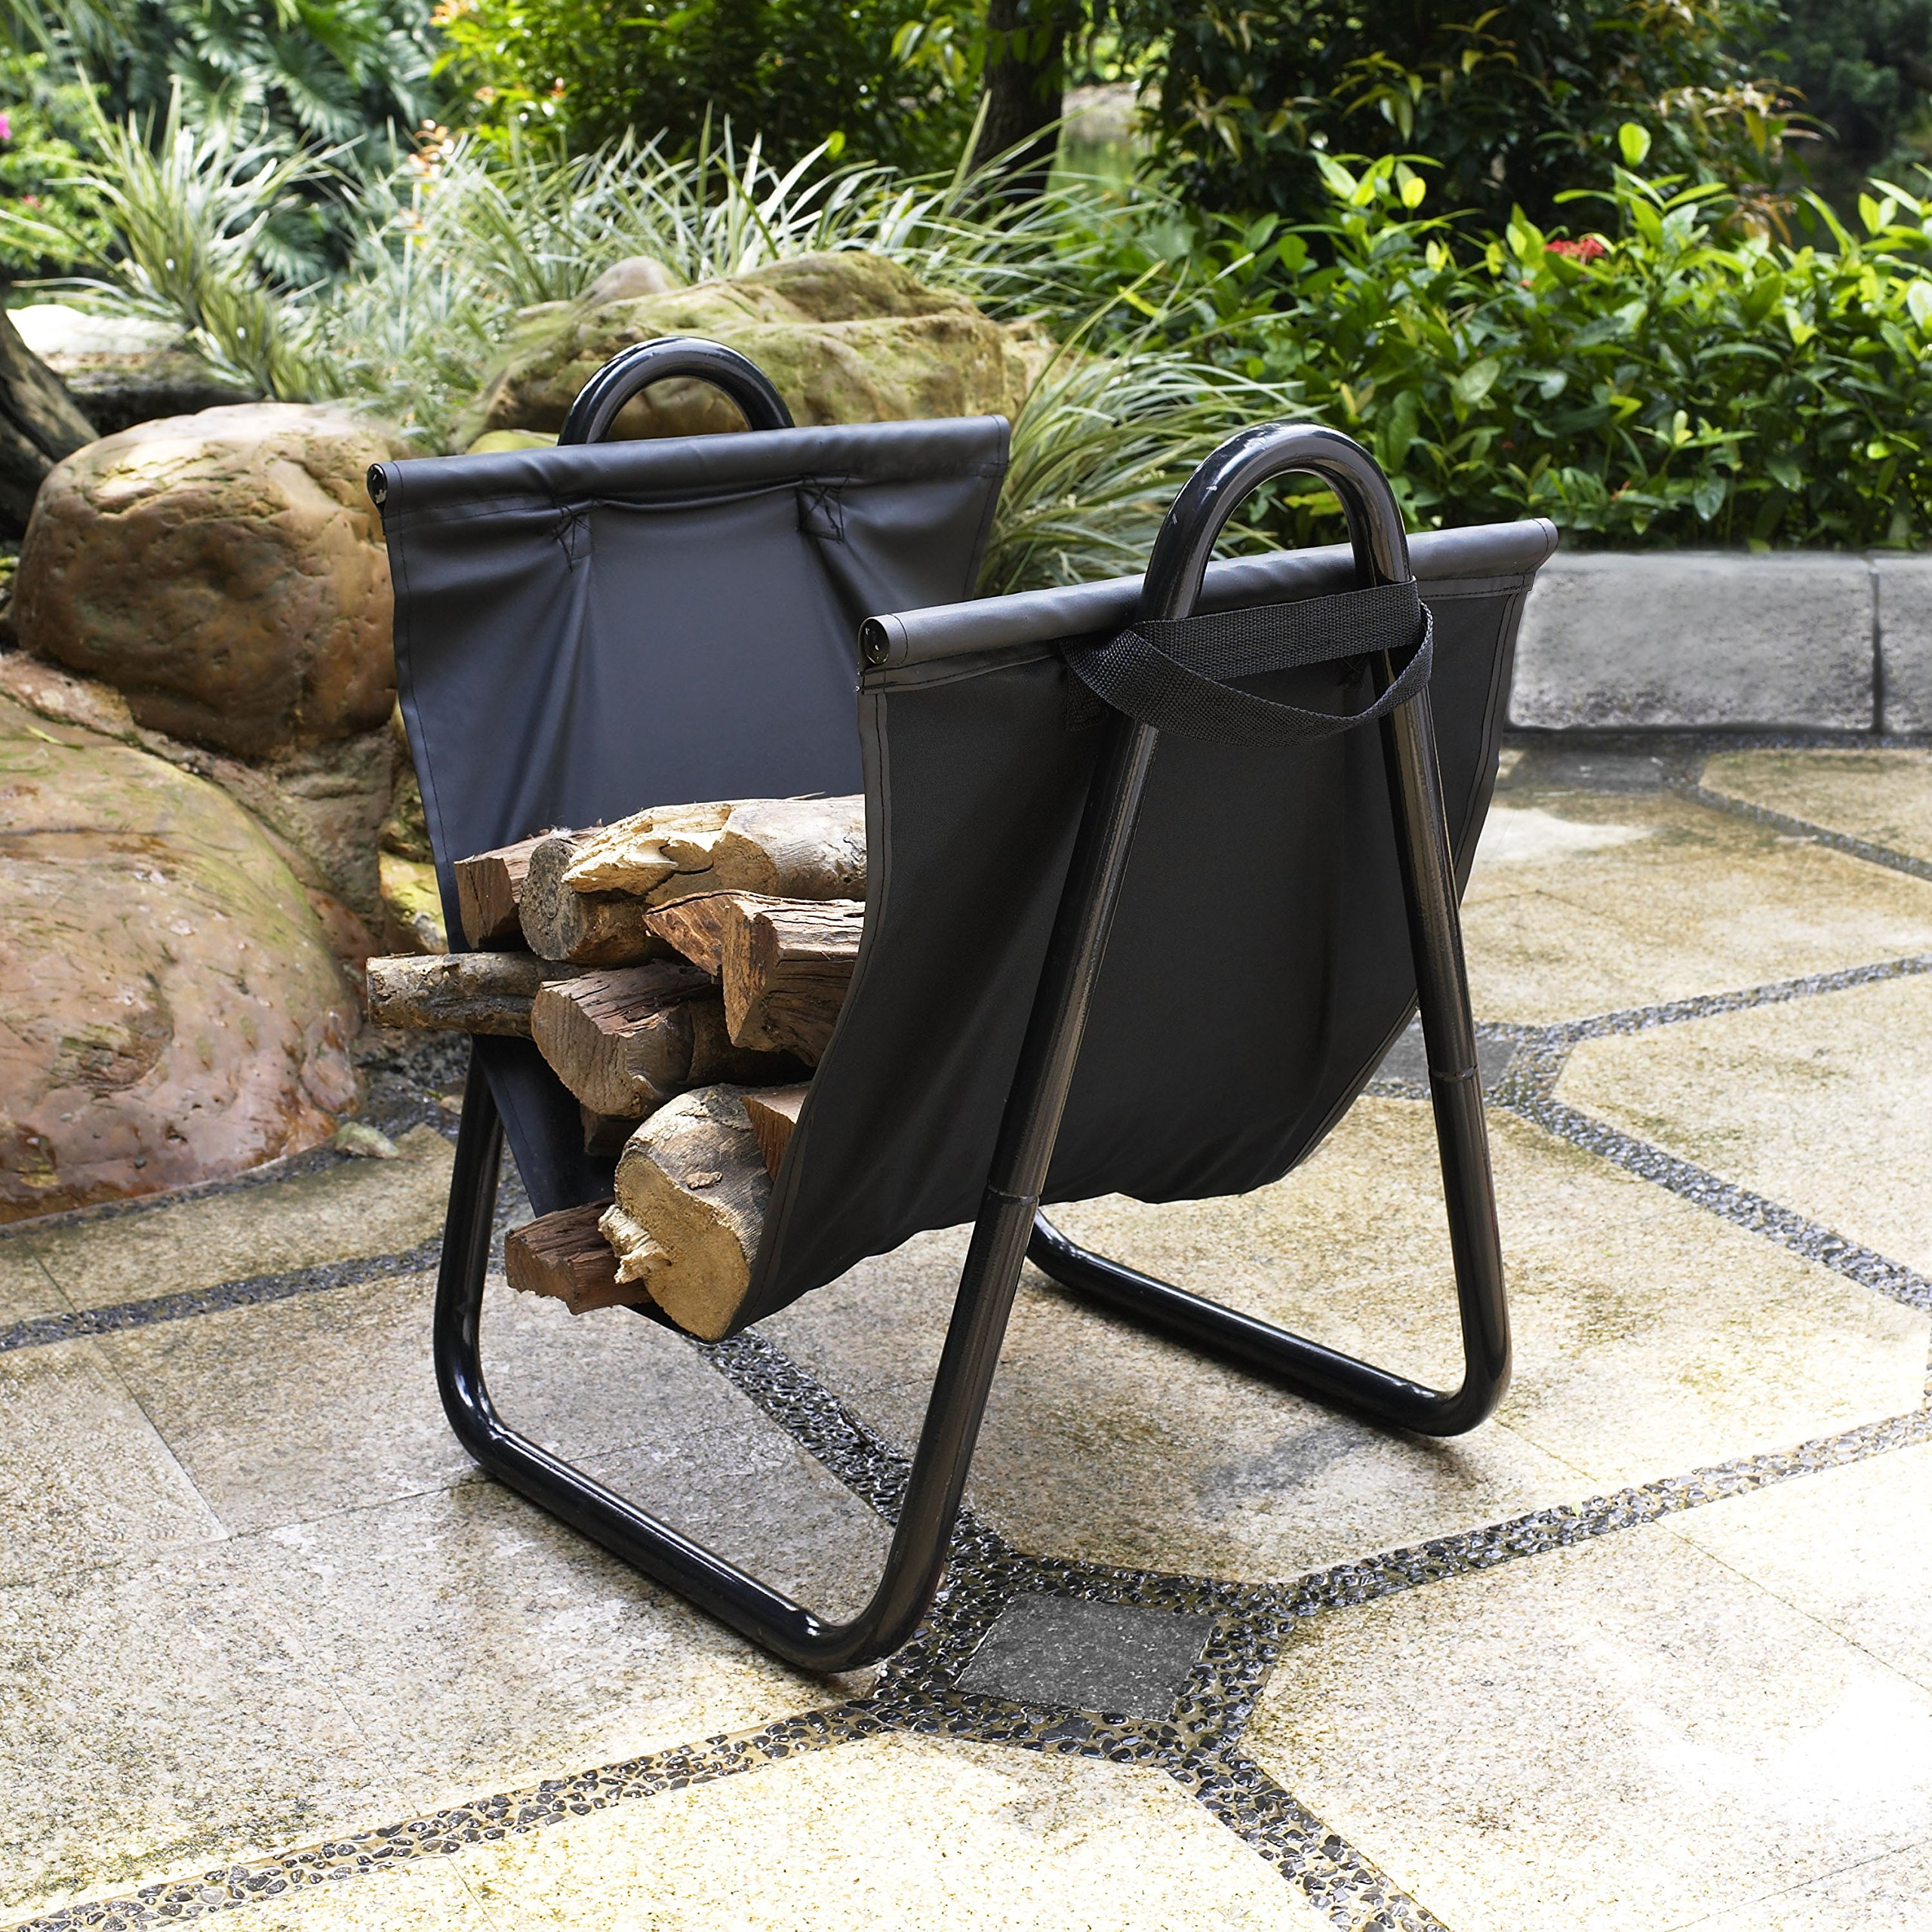 Crosley Furniture Logan Firewood Storage Rack and Carrier - Black by Crosley Furniture (Image #4)